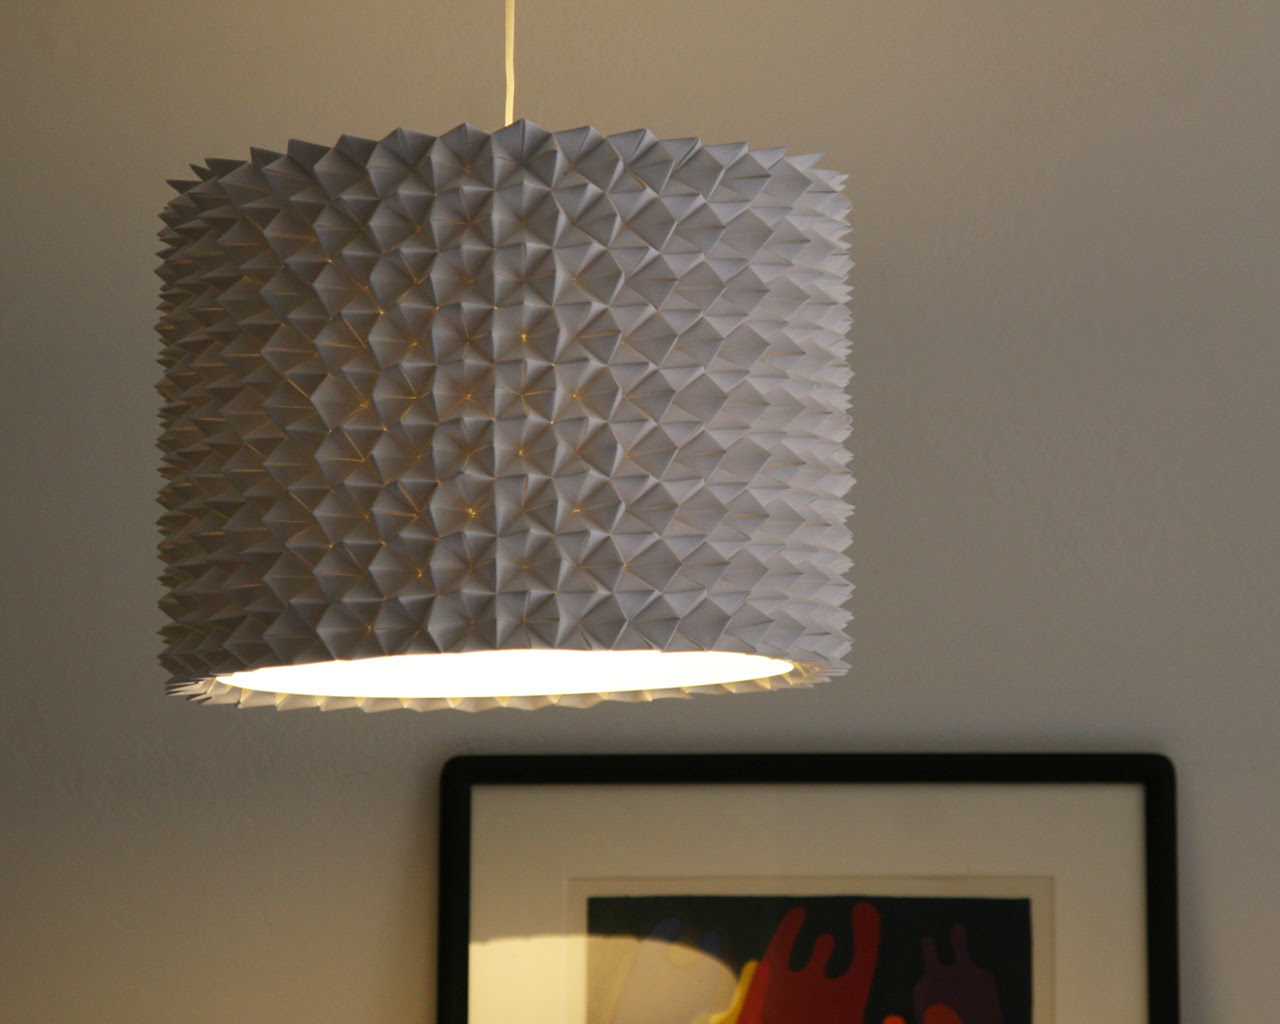 Textured lampshade idea for a pendant lamp in grey